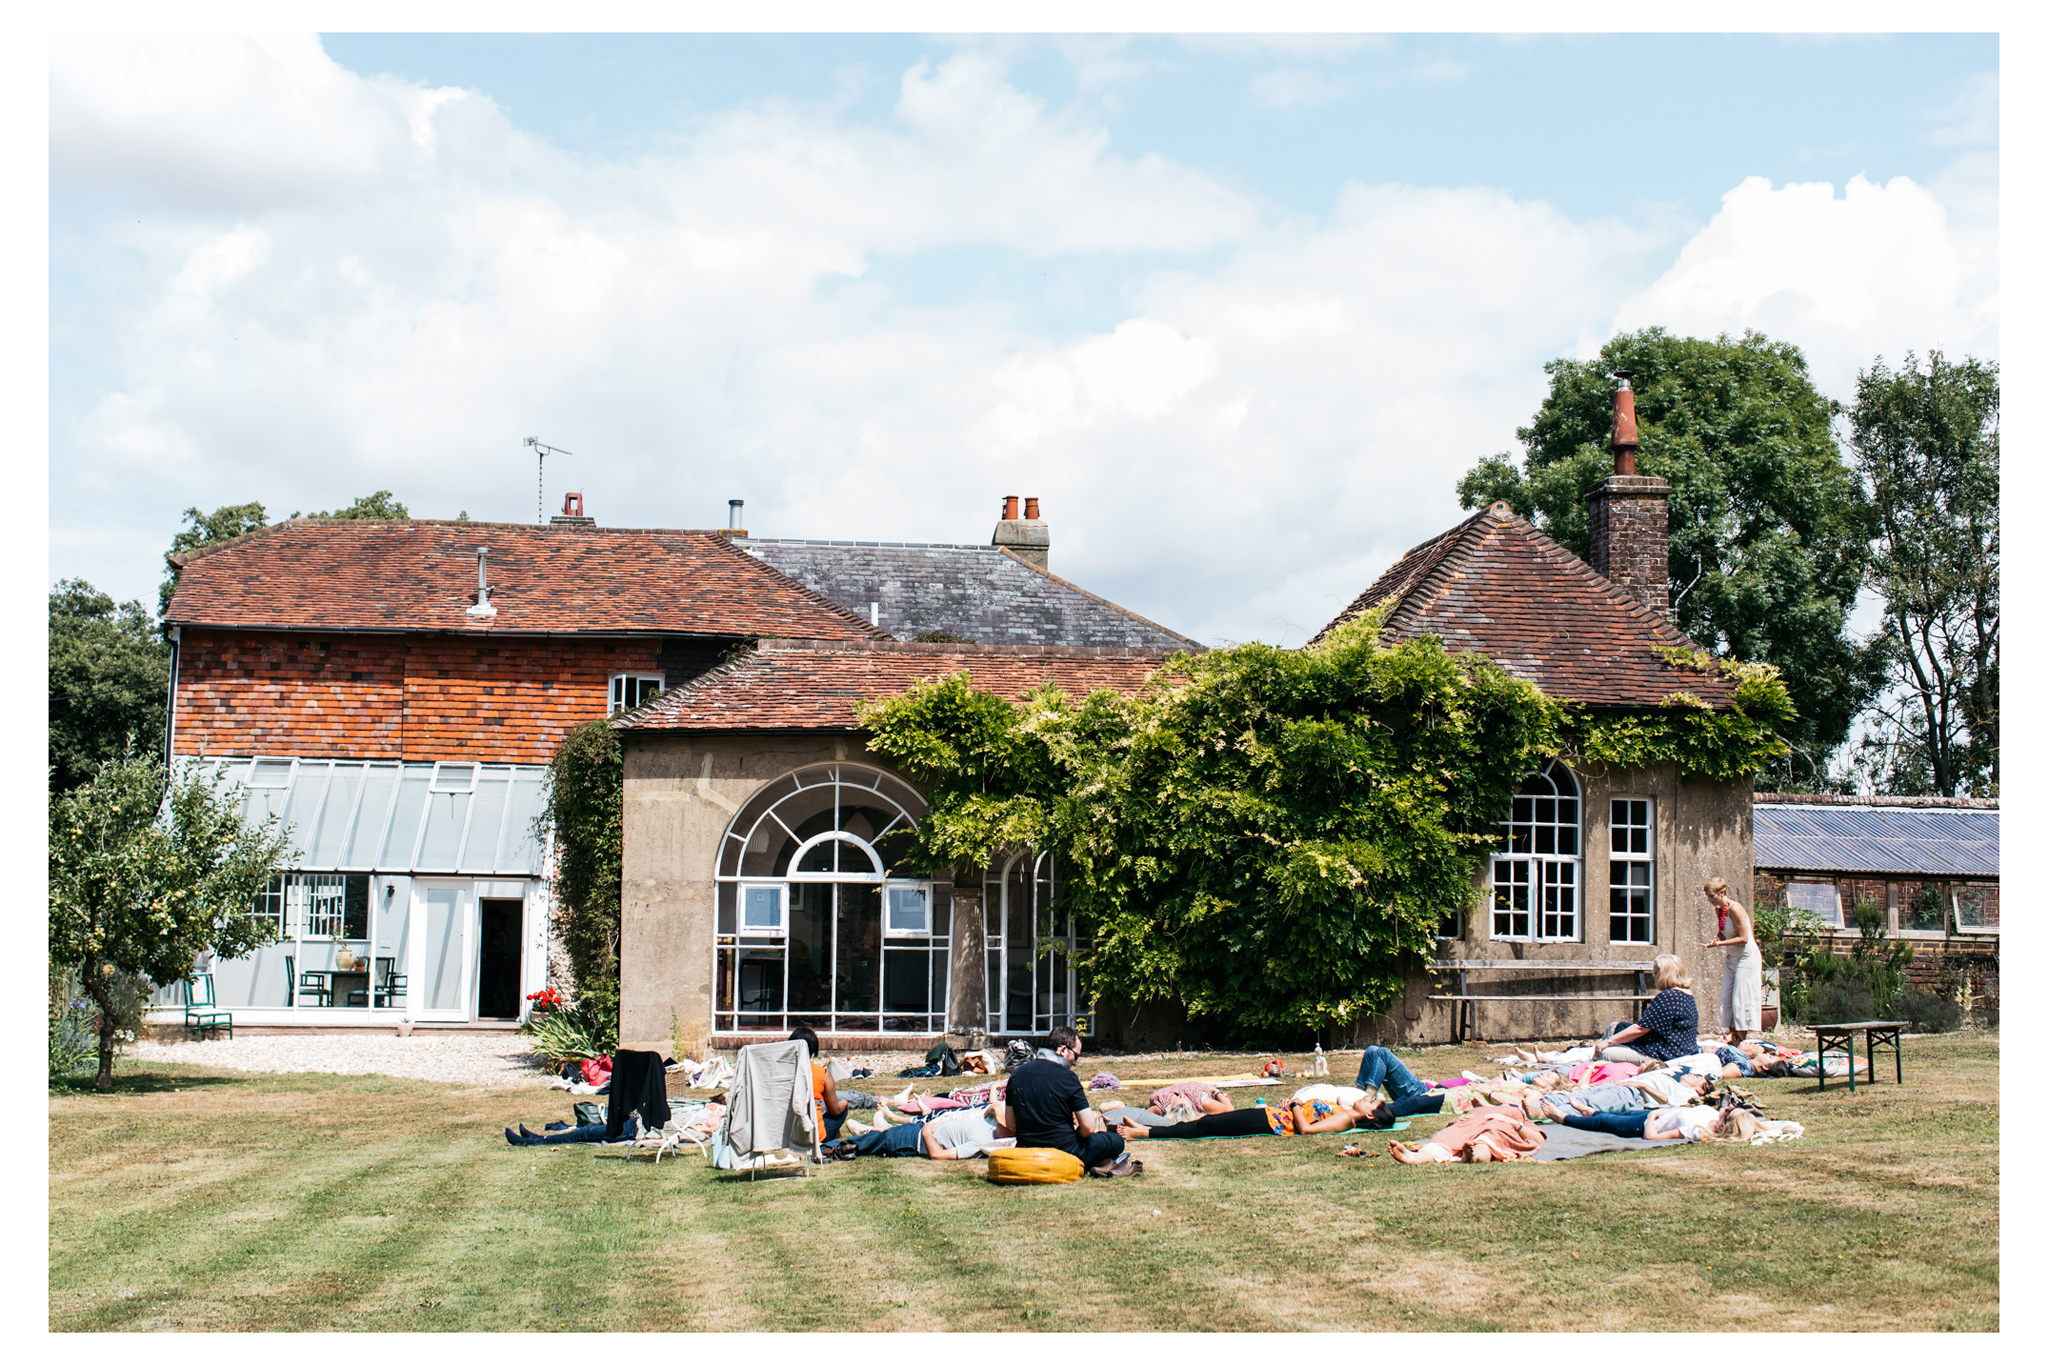 Tanya Borowski is a UK leader in functional gut health and nutrition. She held her retreat in summer 2018 at Tilton House photographed by Emma Croman.